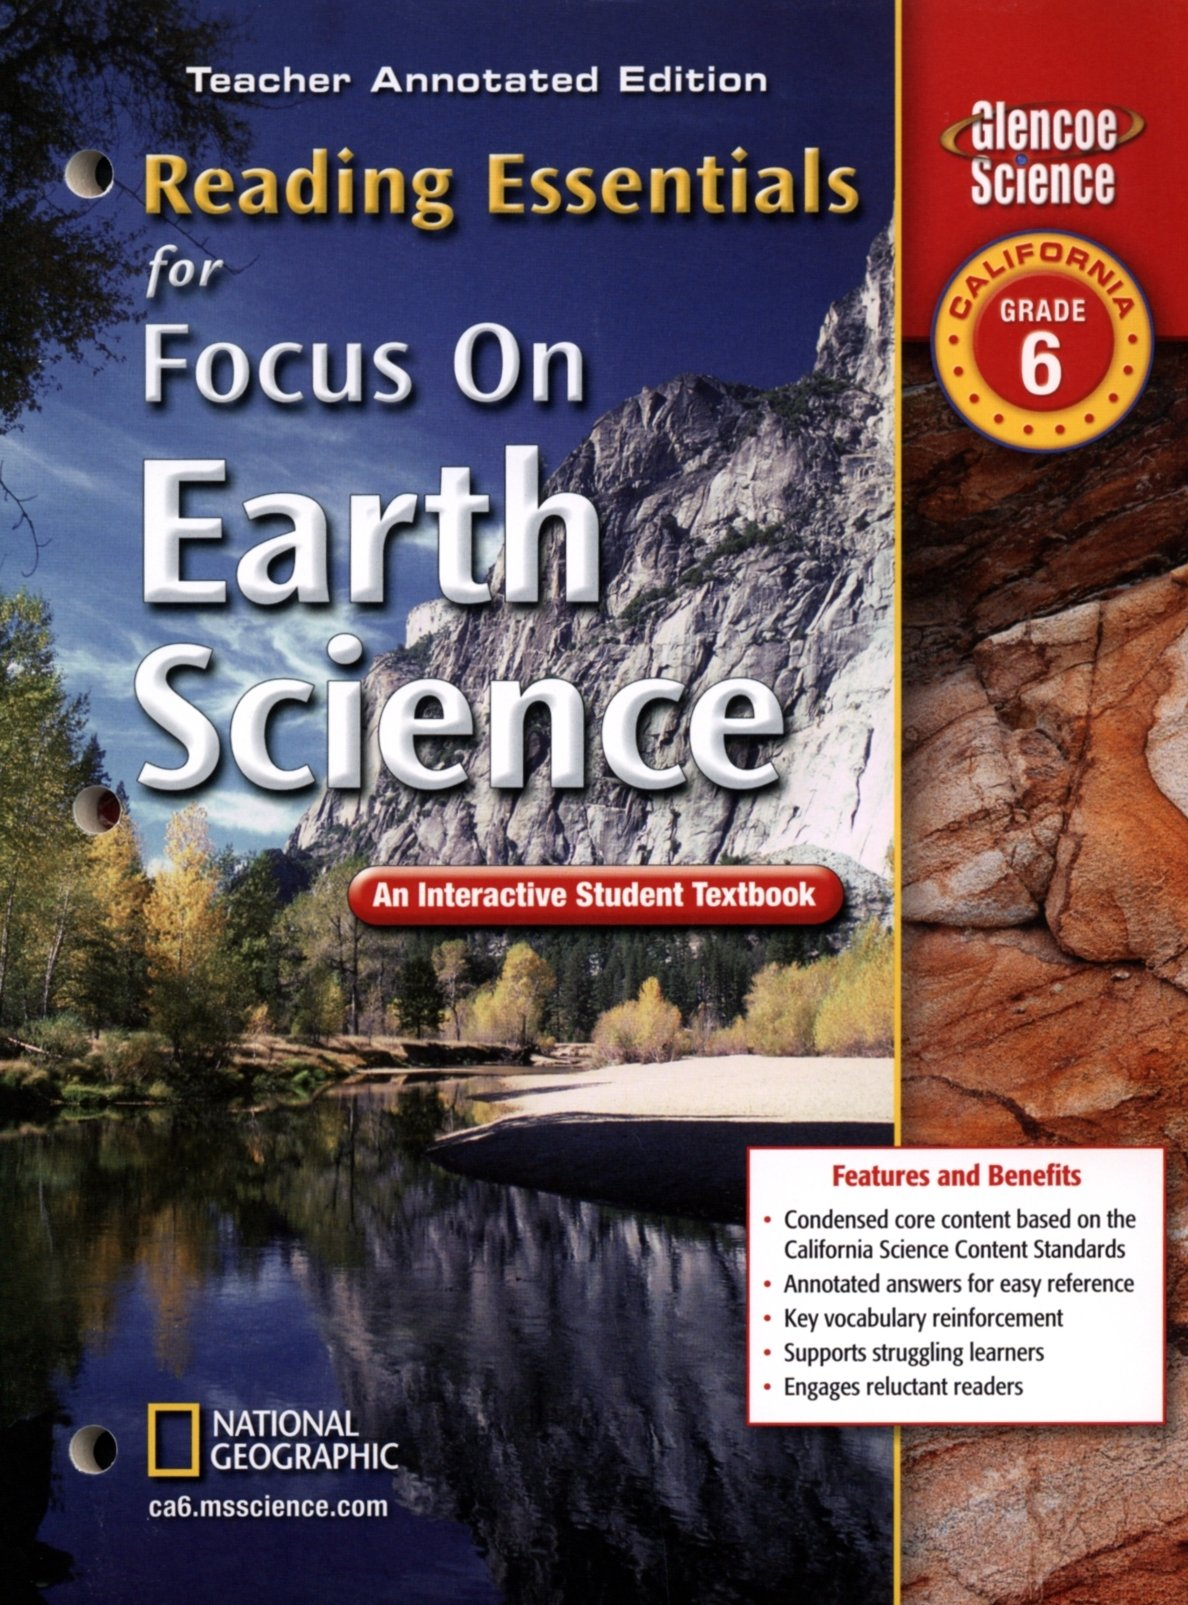 Glencoe Science Reading Essentials for Focus on Earth Science, California  Grade 6: Teacher Annotated Edition (Glencoe Science): Glencoe/McGraw-Hill:  ...